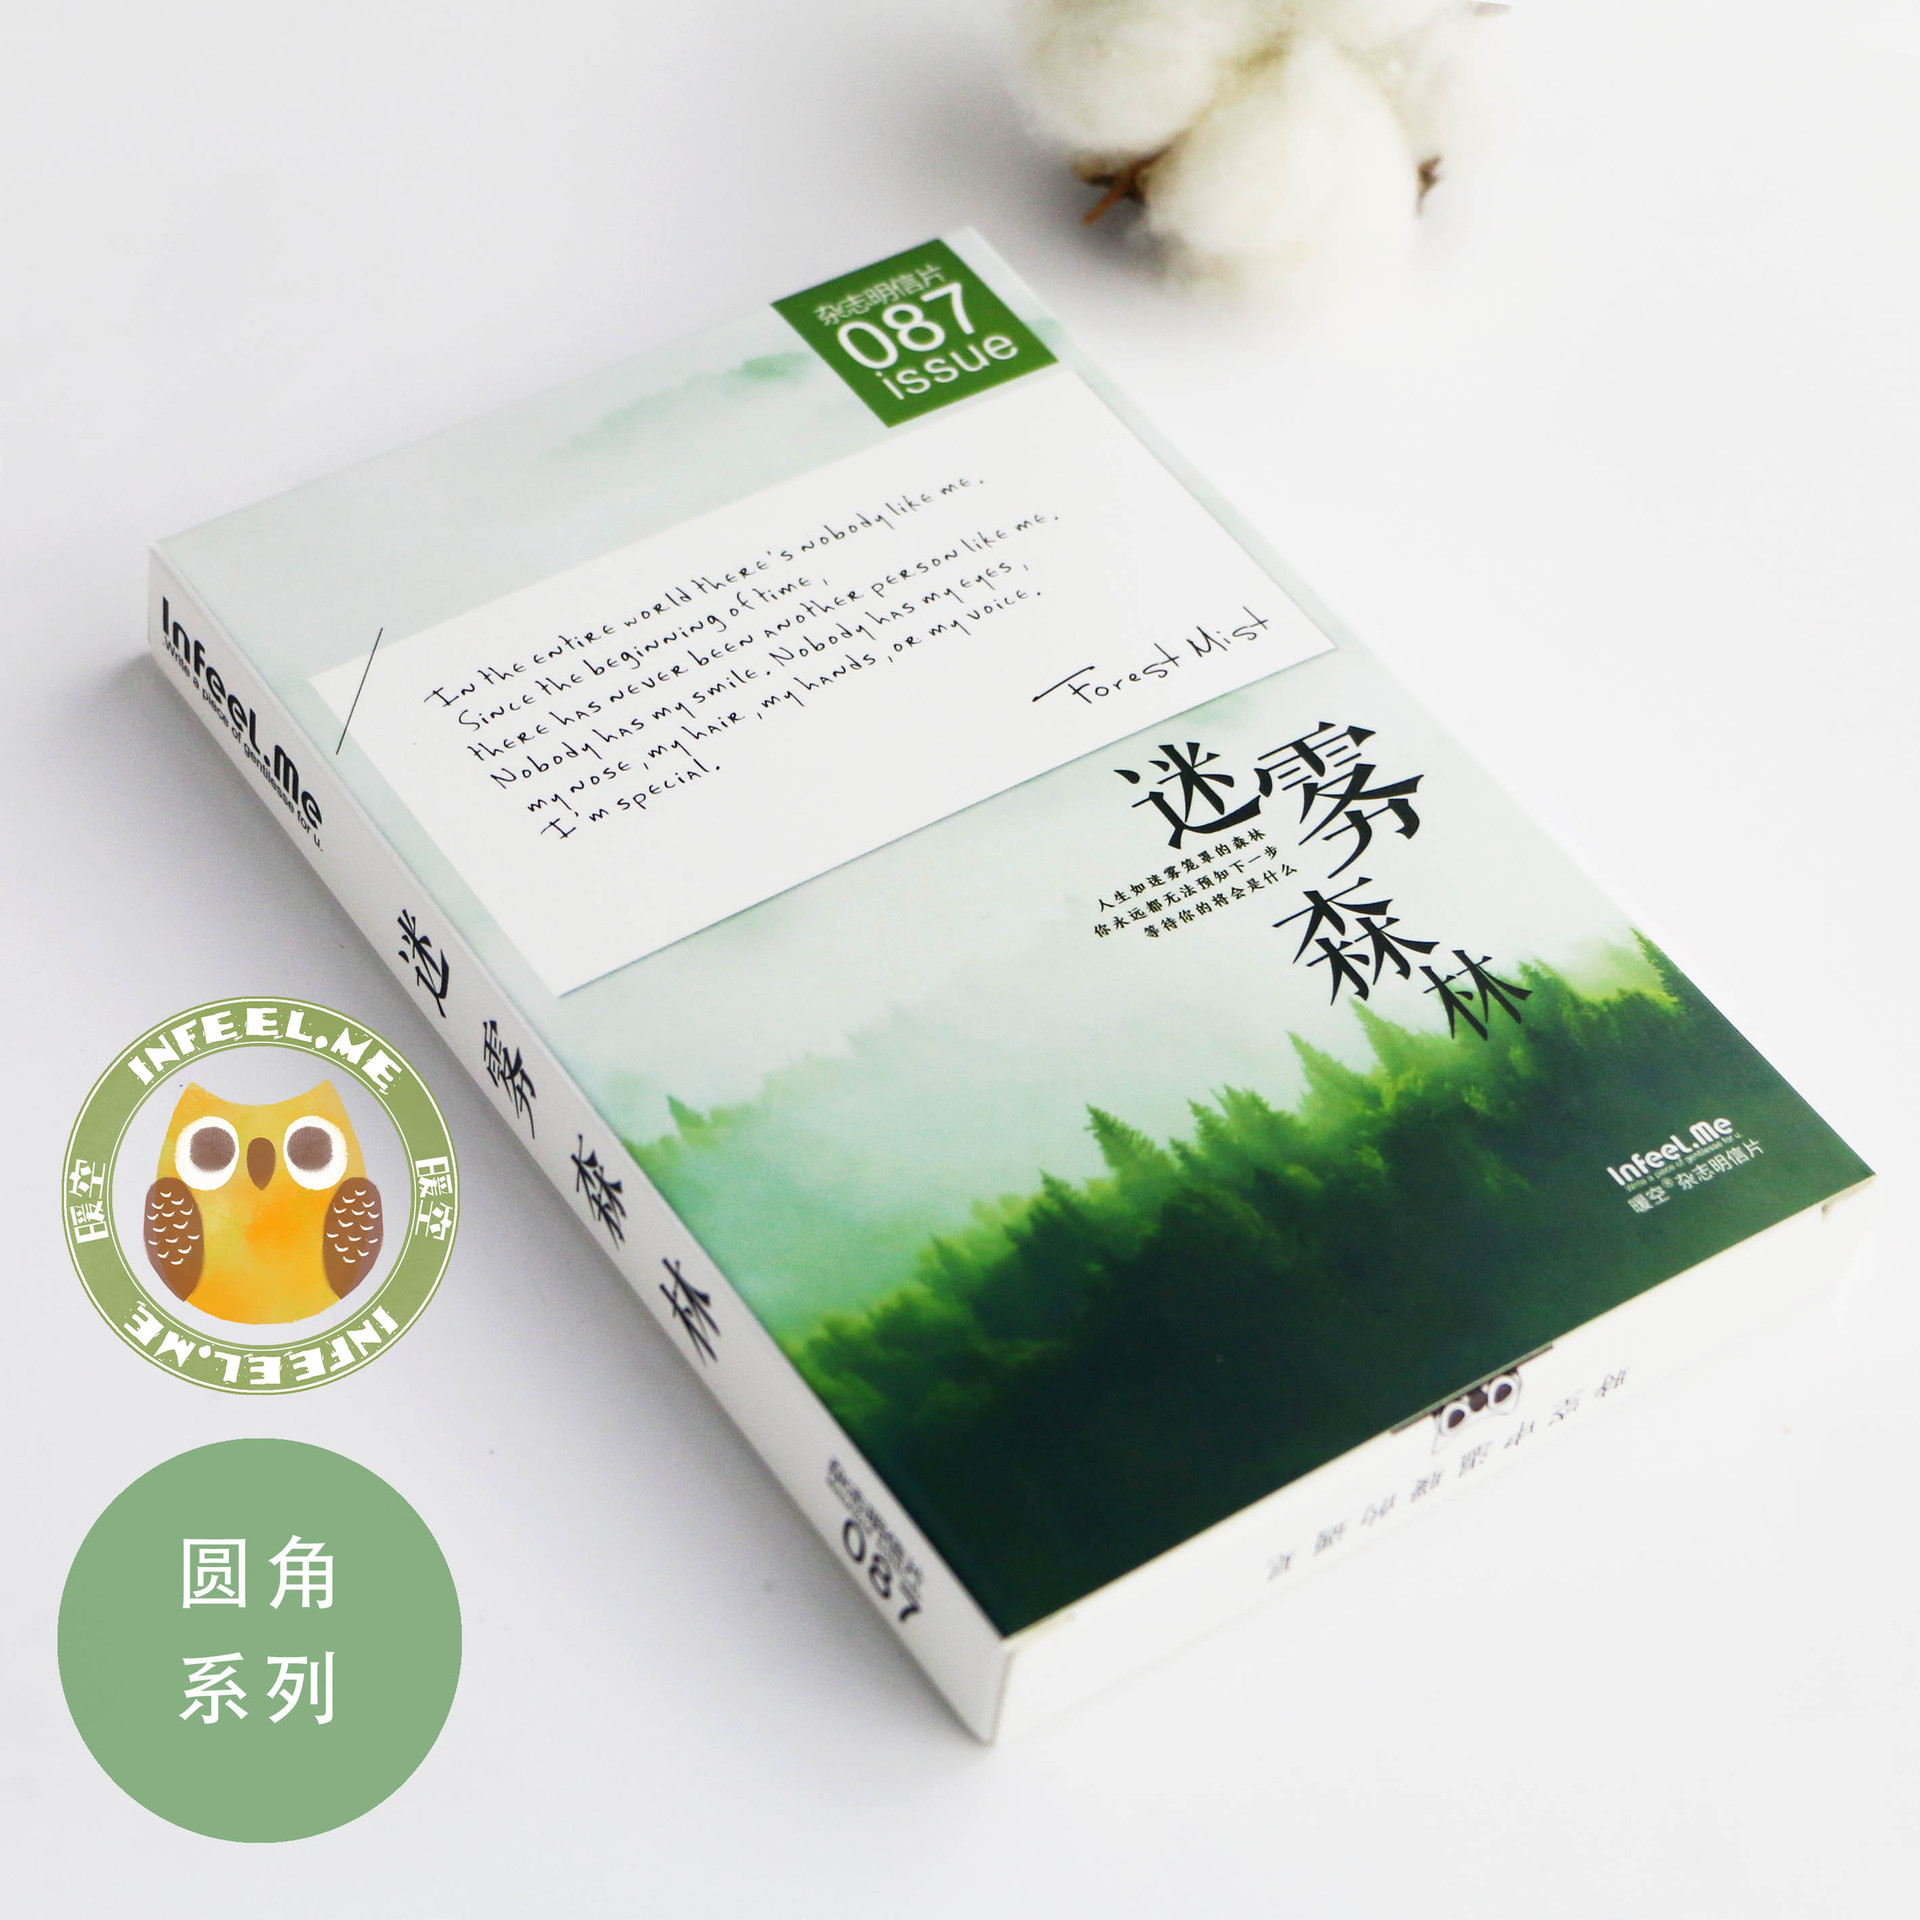 30 pcs/pack Cute Korean Stationery Natural Forest Mist Round Corner Postcards Bookmark Gift Cards DIY Paper Cards 350G Paper a pack of summer fresh plants paper bookmark 30 pieces different design great gift